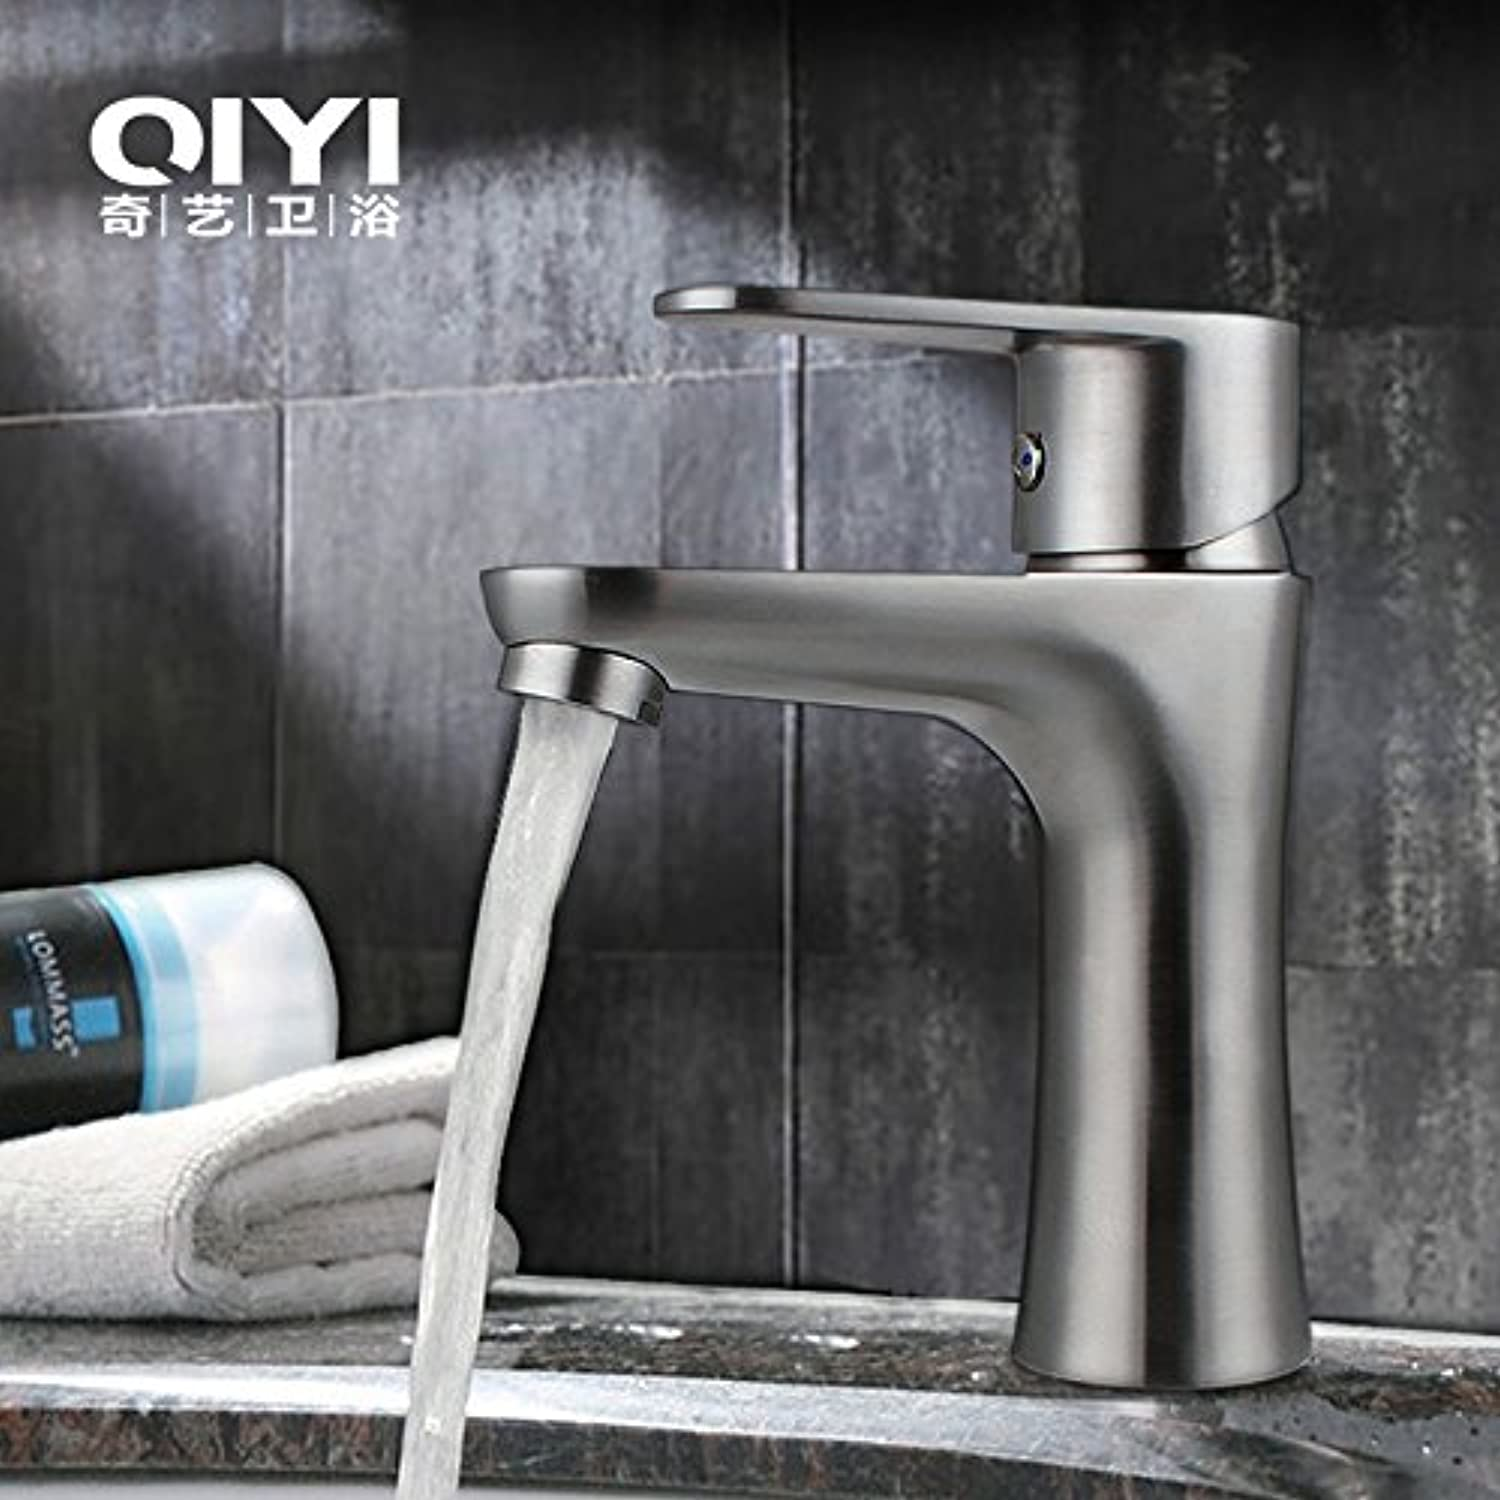 Gyps Faucet Single Lever Washbasin Mixer Tap 304 Stainless Steel Basin Sink is Pretty Small, Lap-Fit Tap Brushed Fine Left Hand Wash Your Face Wash Warm and Cold